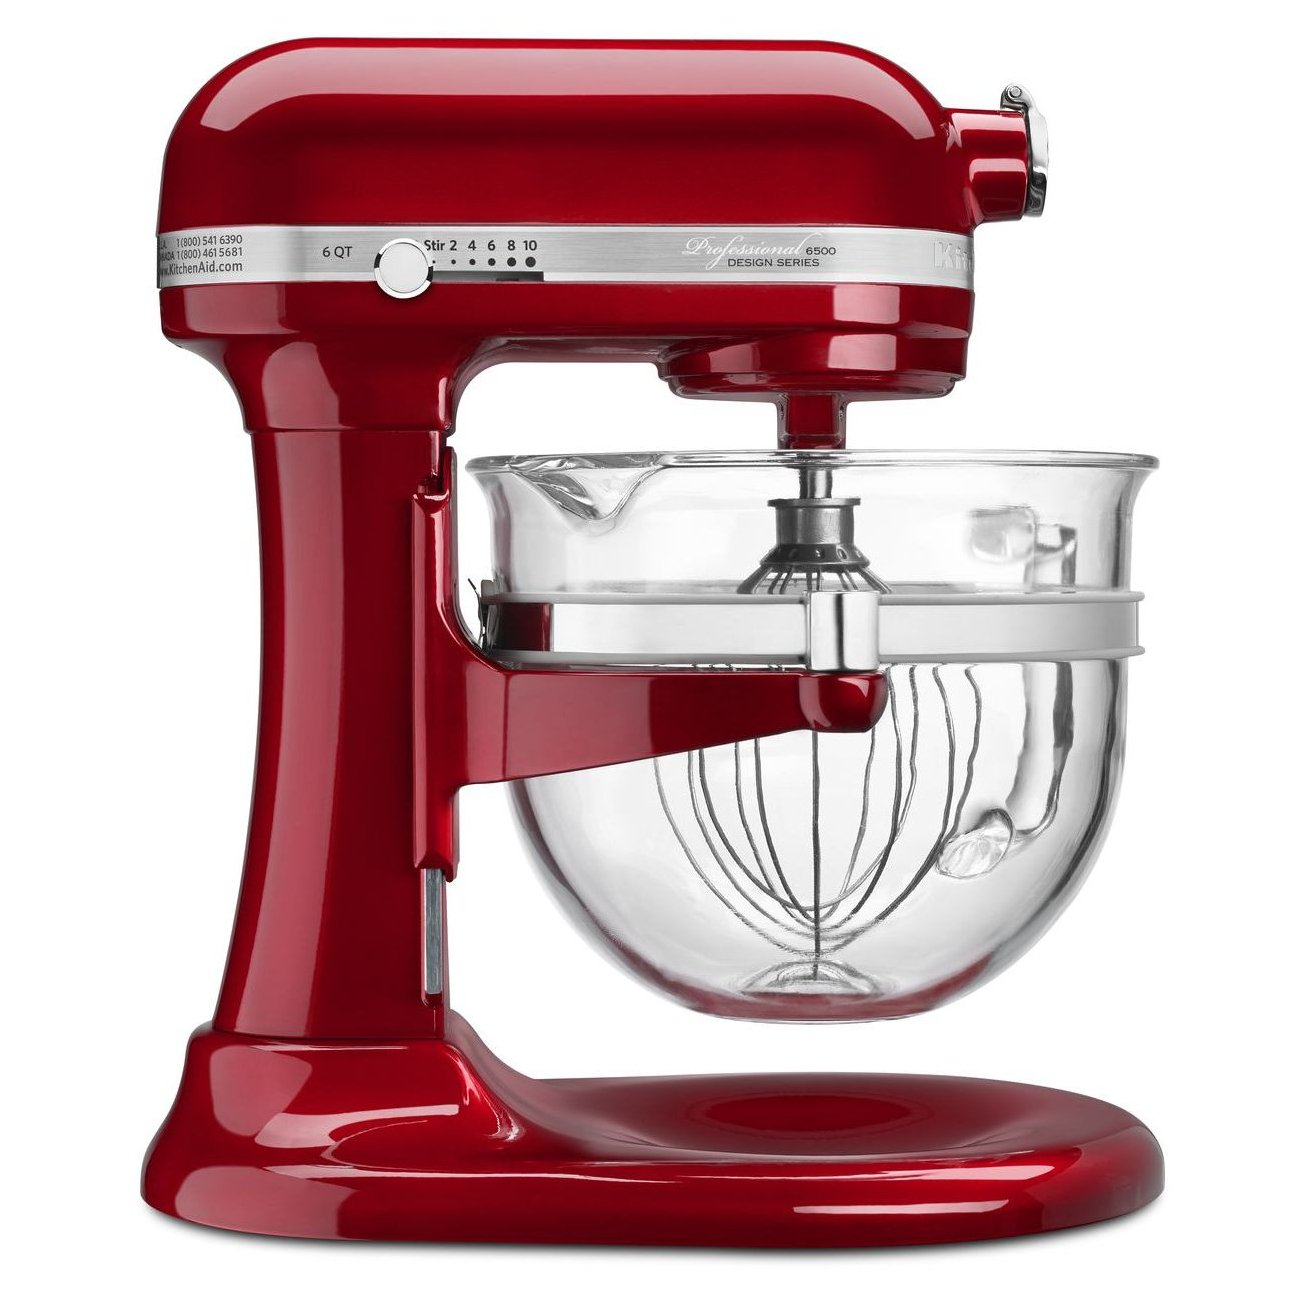 Amazon.com: KitchenAid Professional 6500 Design Series Candy Apple ...